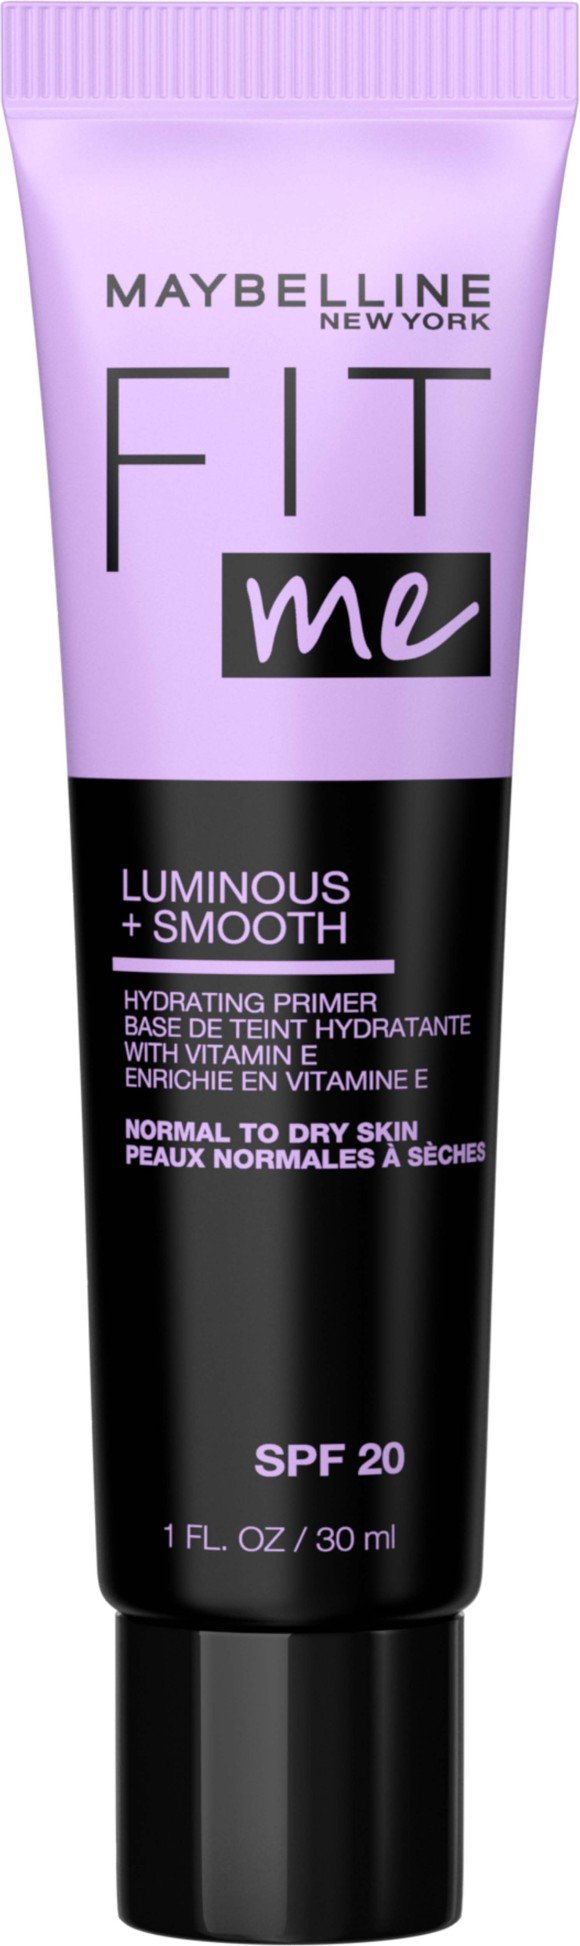 Maybelline - Fit Me Luminous + Smooth Primer